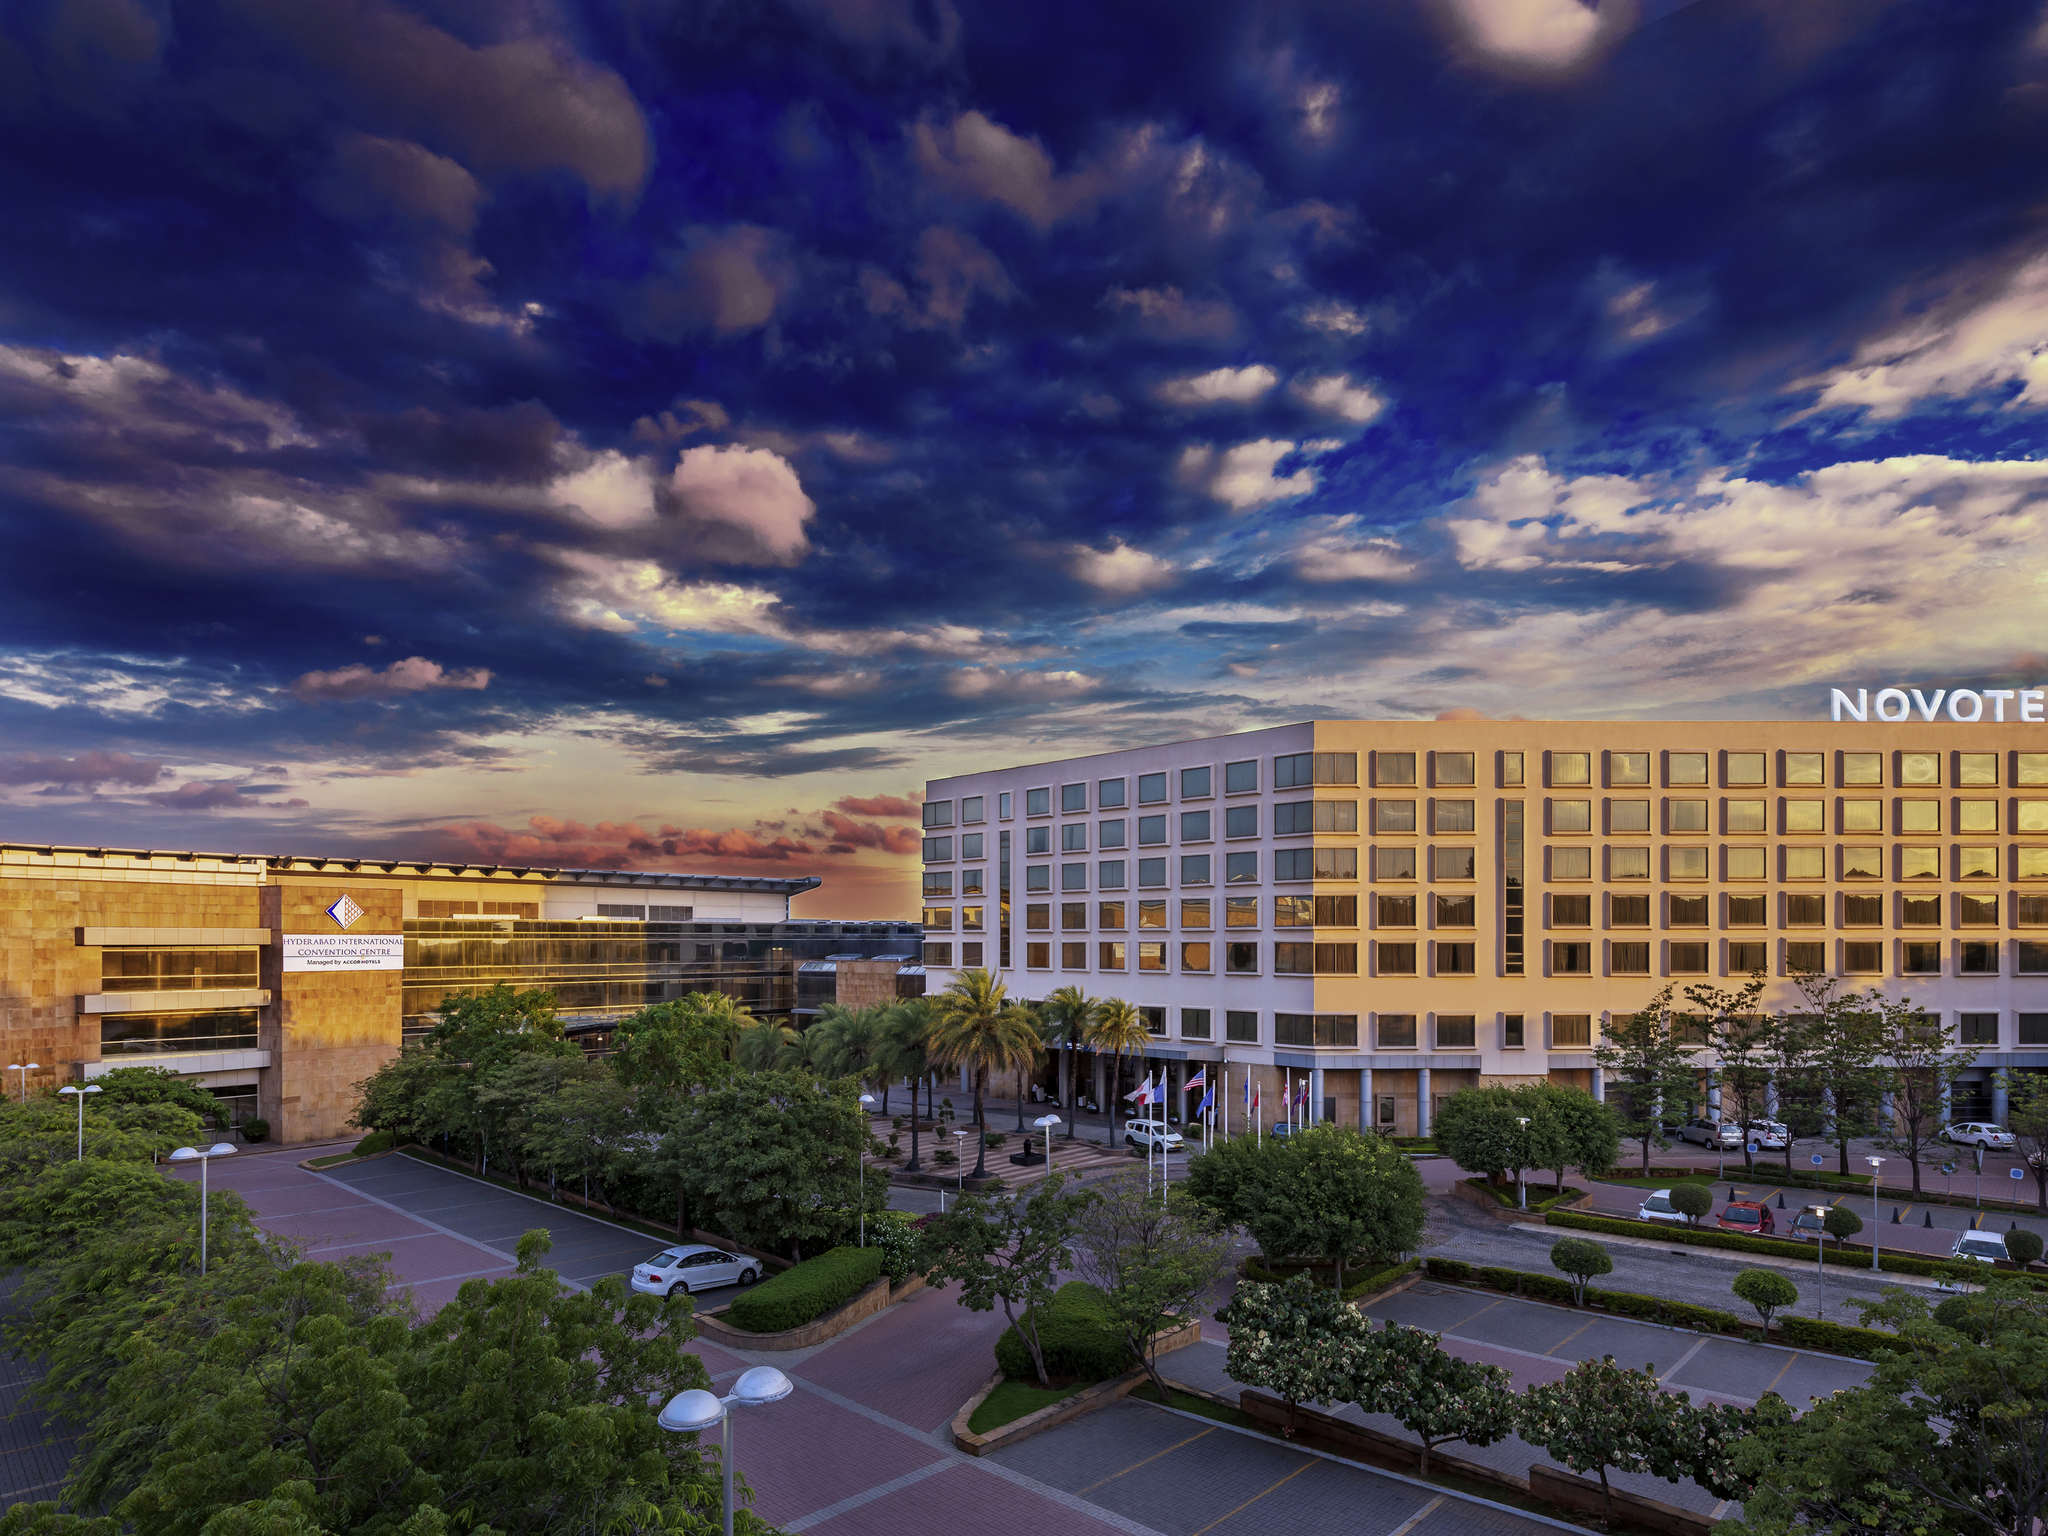 فندق - Novotel Hyderabad Convention Centre